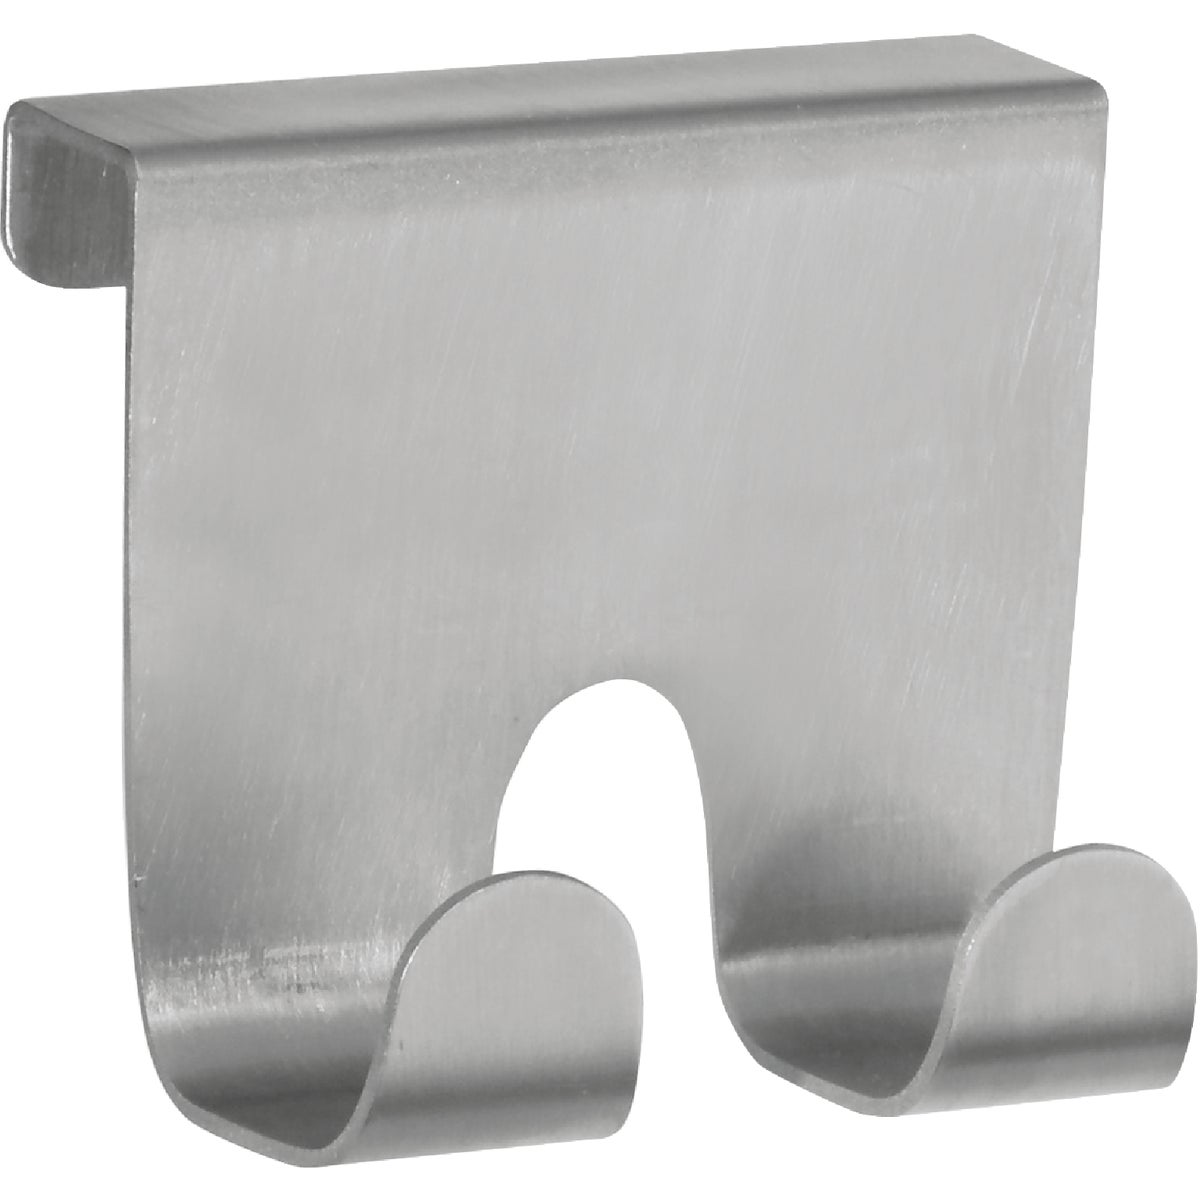 ST STL OVER CABINET HOOK - 29430 by Interdesign Inc